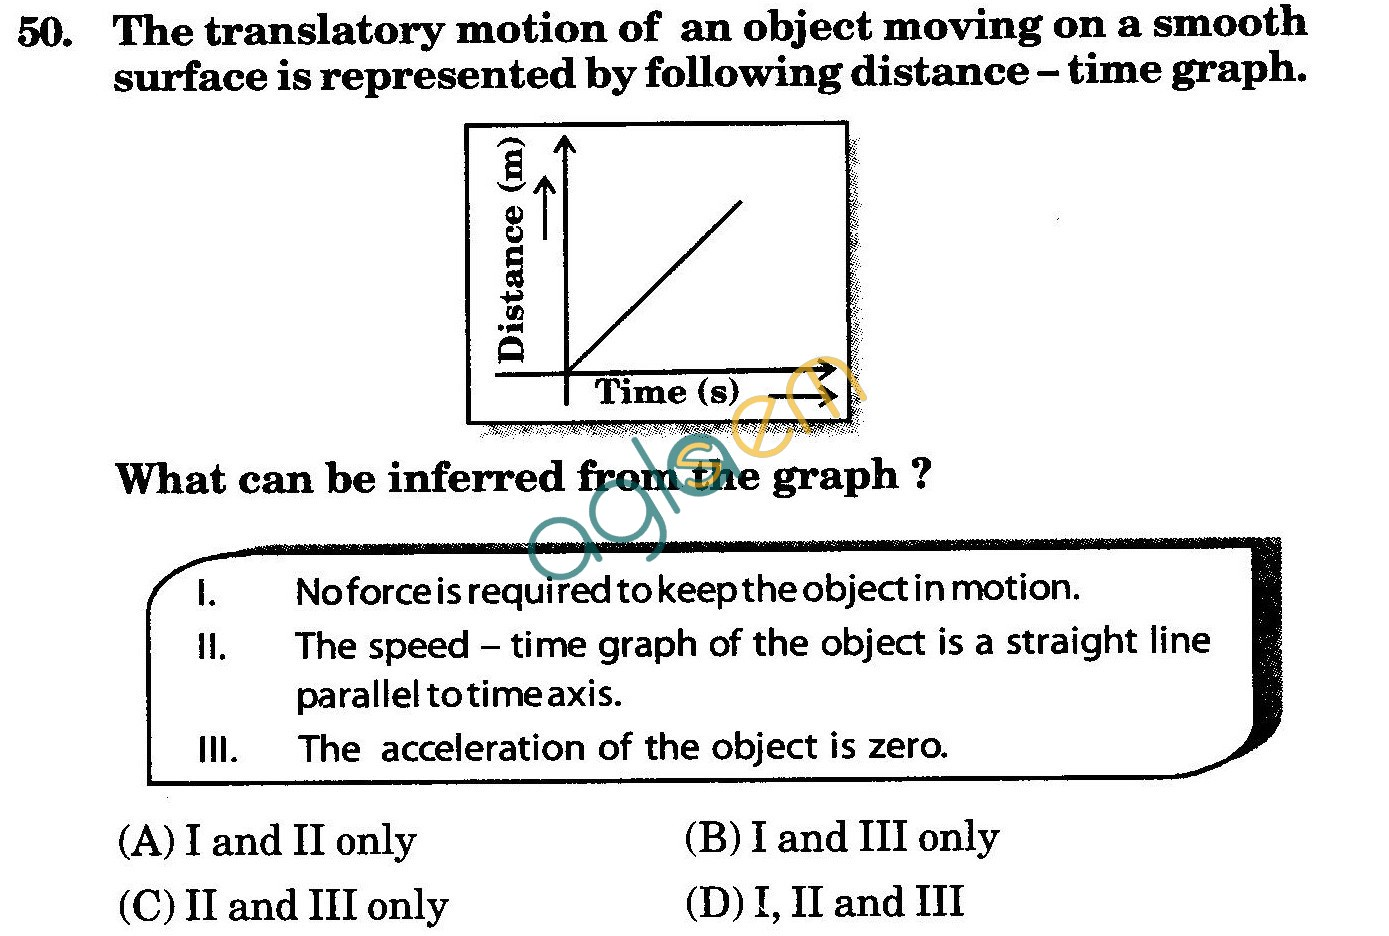 NSTSE 2010: Class IX Question Paper with Answers - Physics